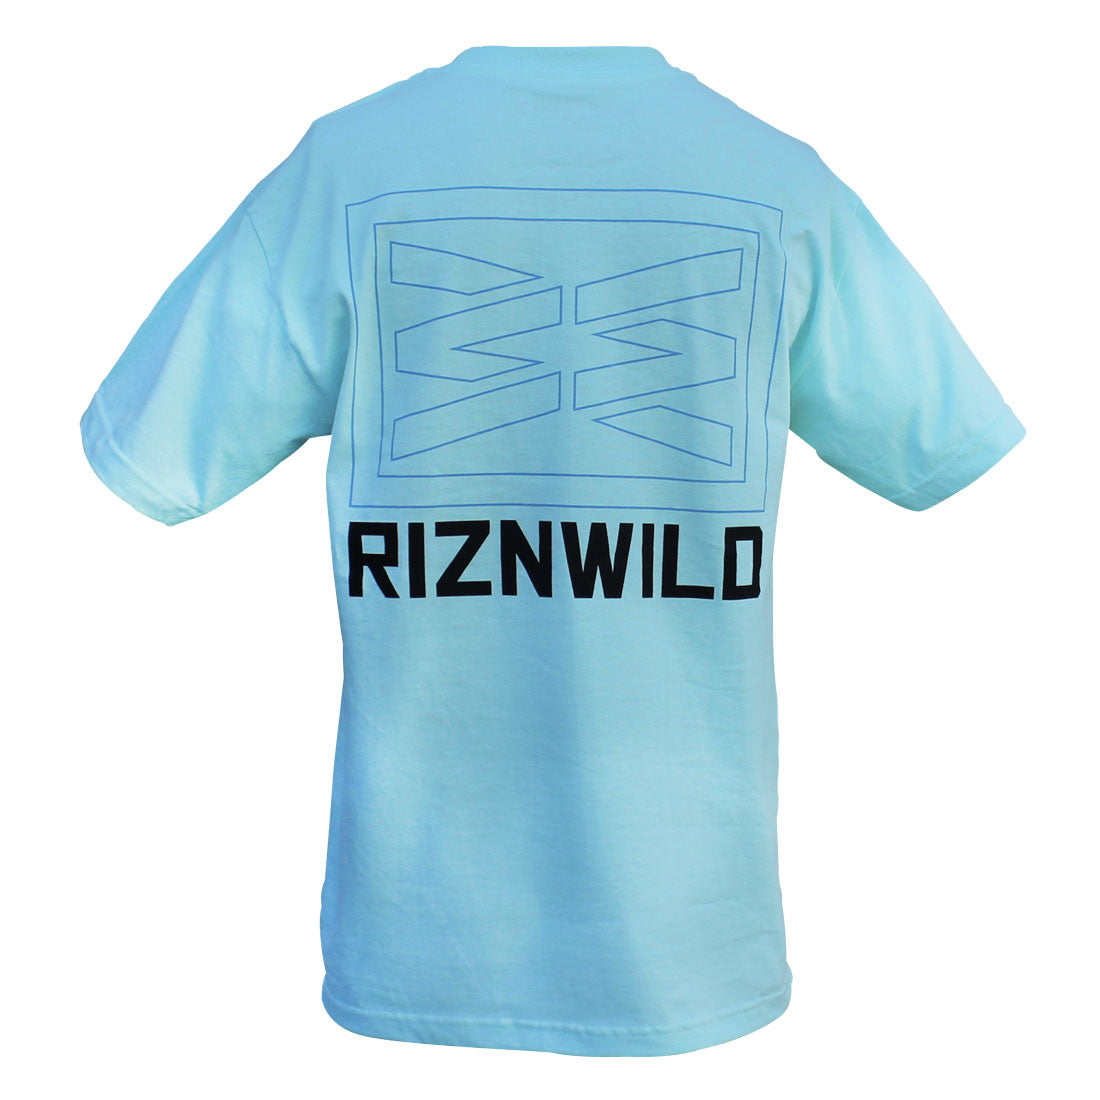 RIZNWILD | Large screen printed logo on the back of a celadon men's tee